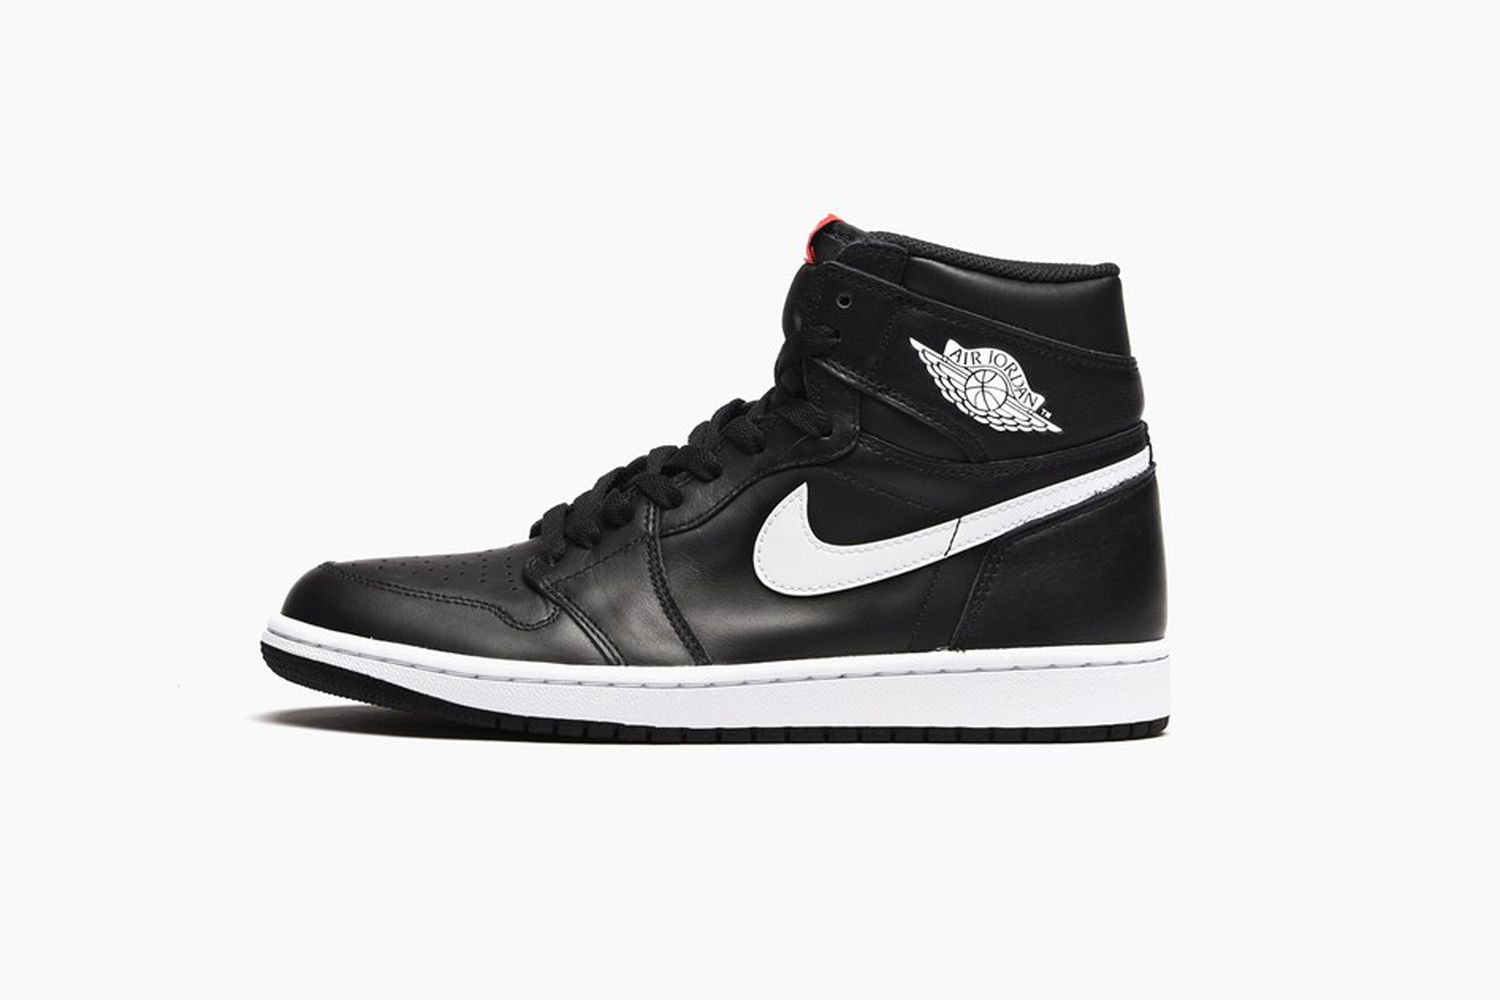 Air Jordan 1 Retro High